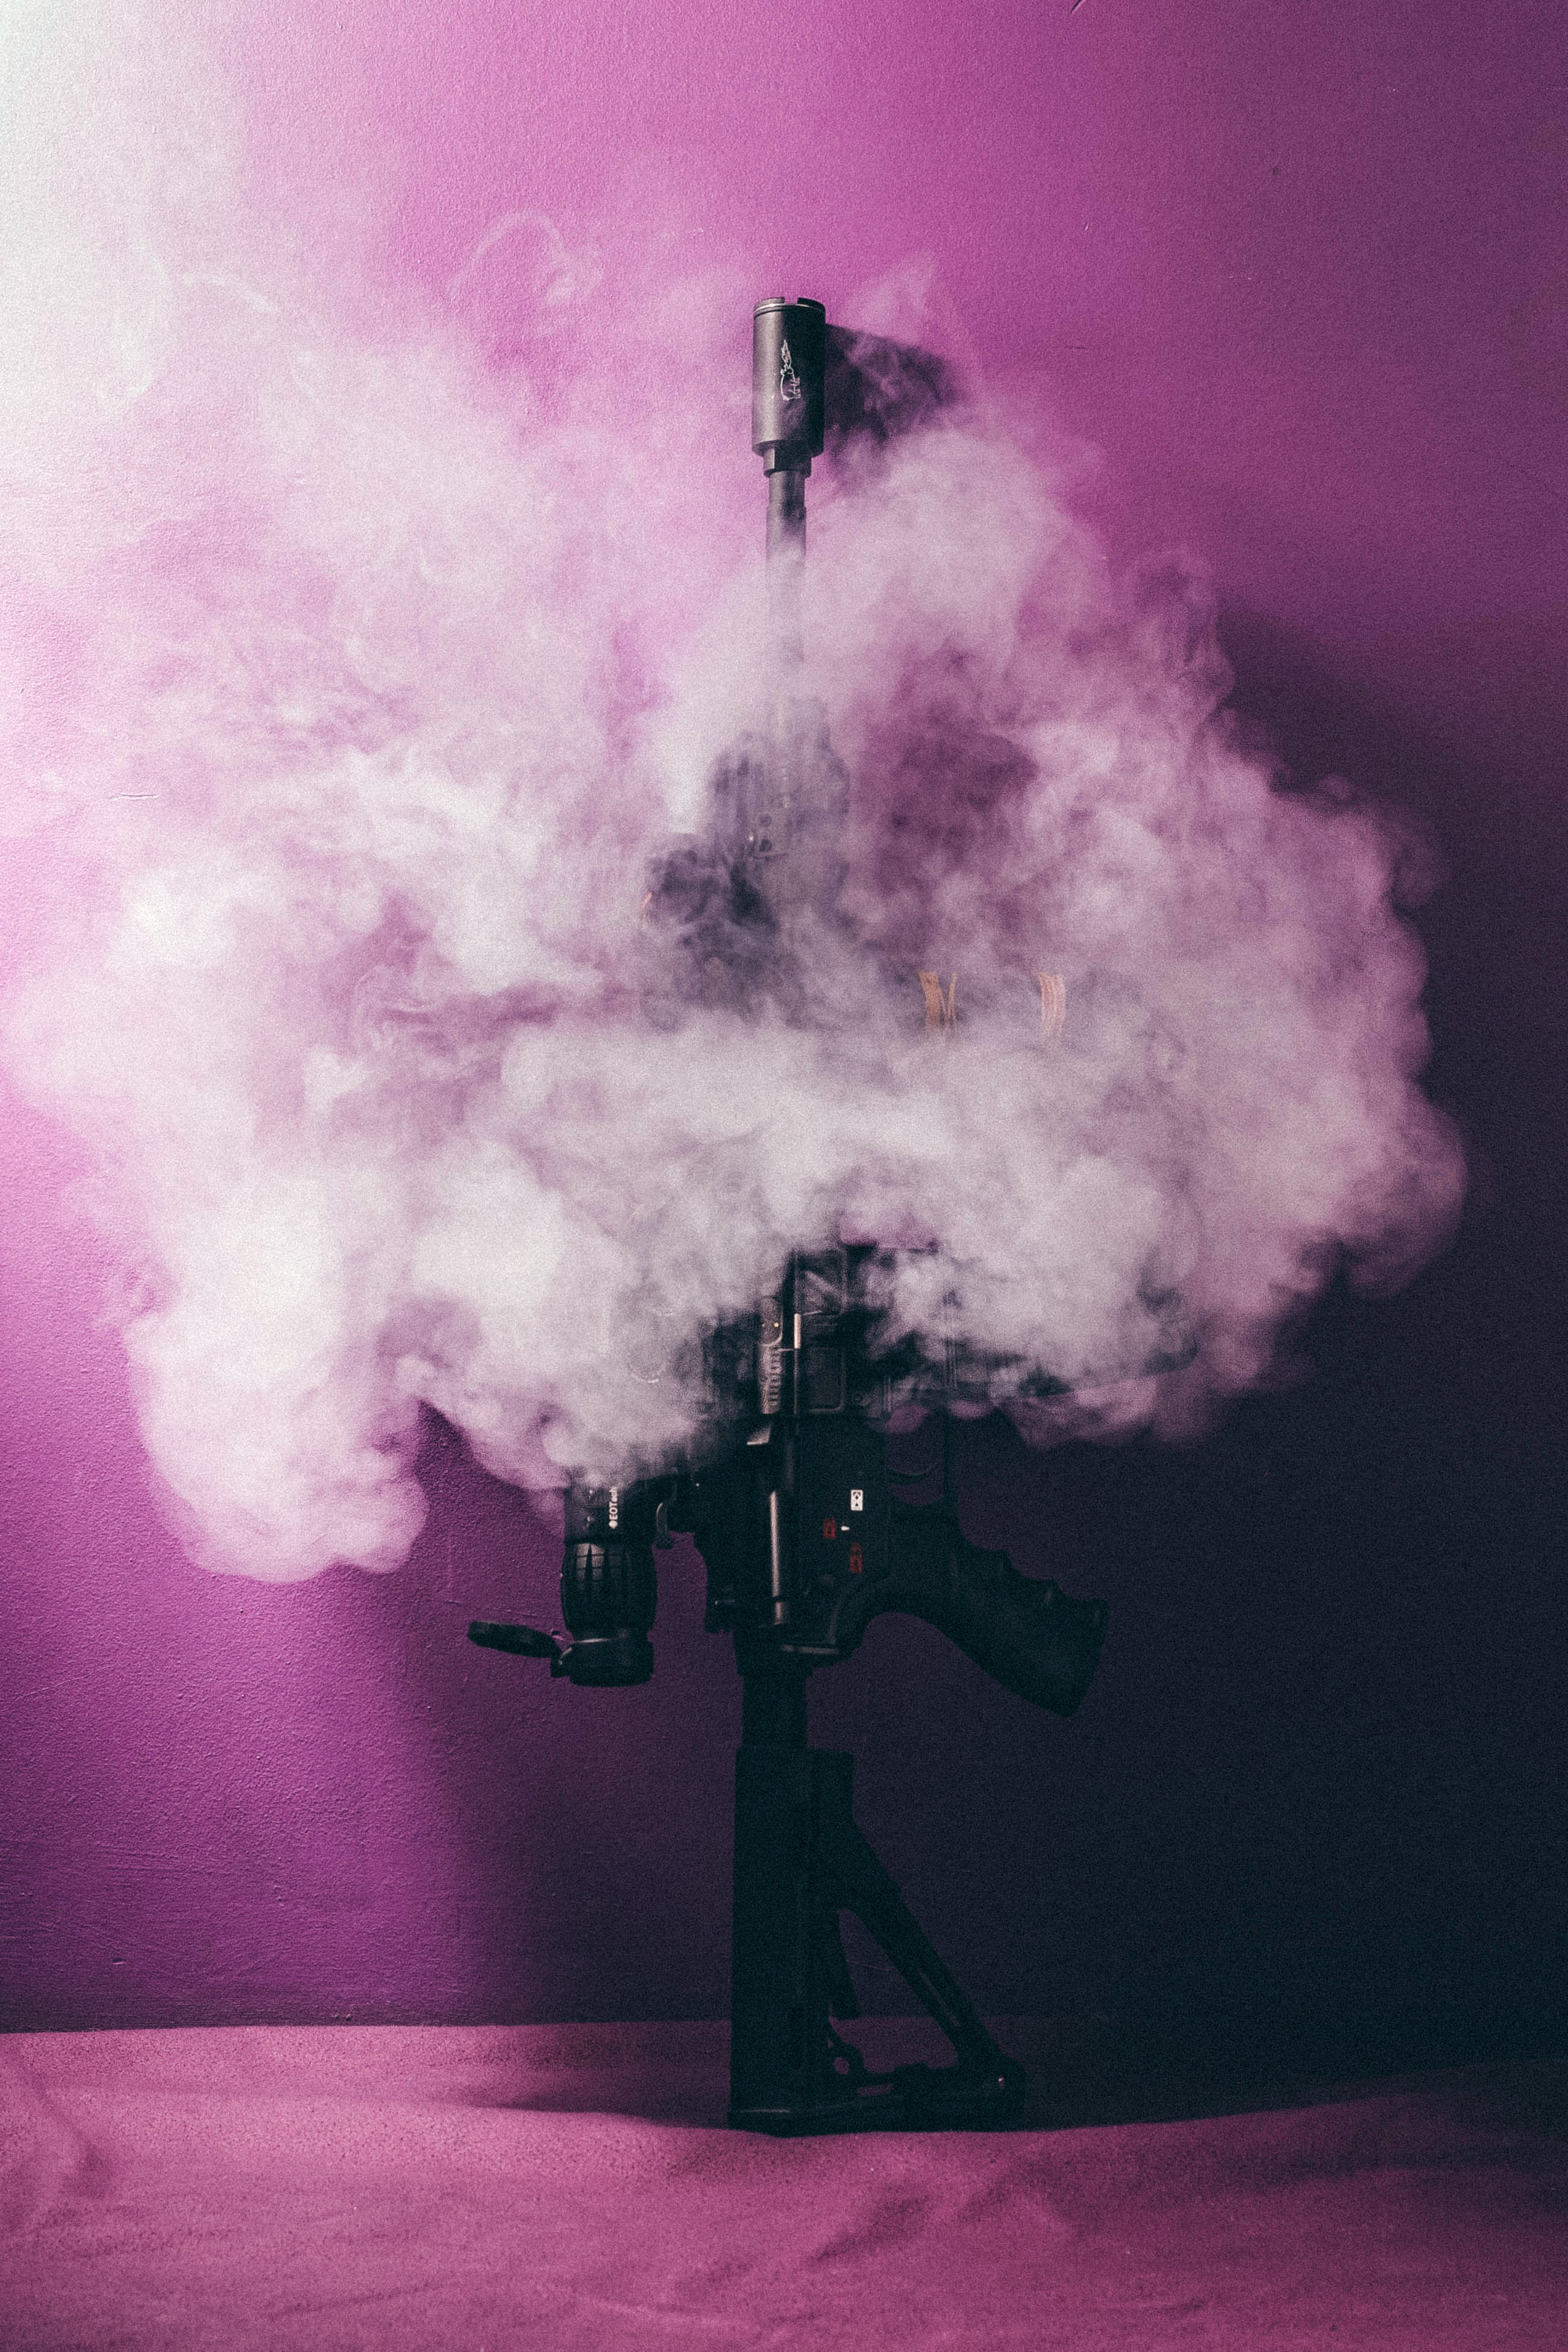 black assault rifle surrounded by smokes